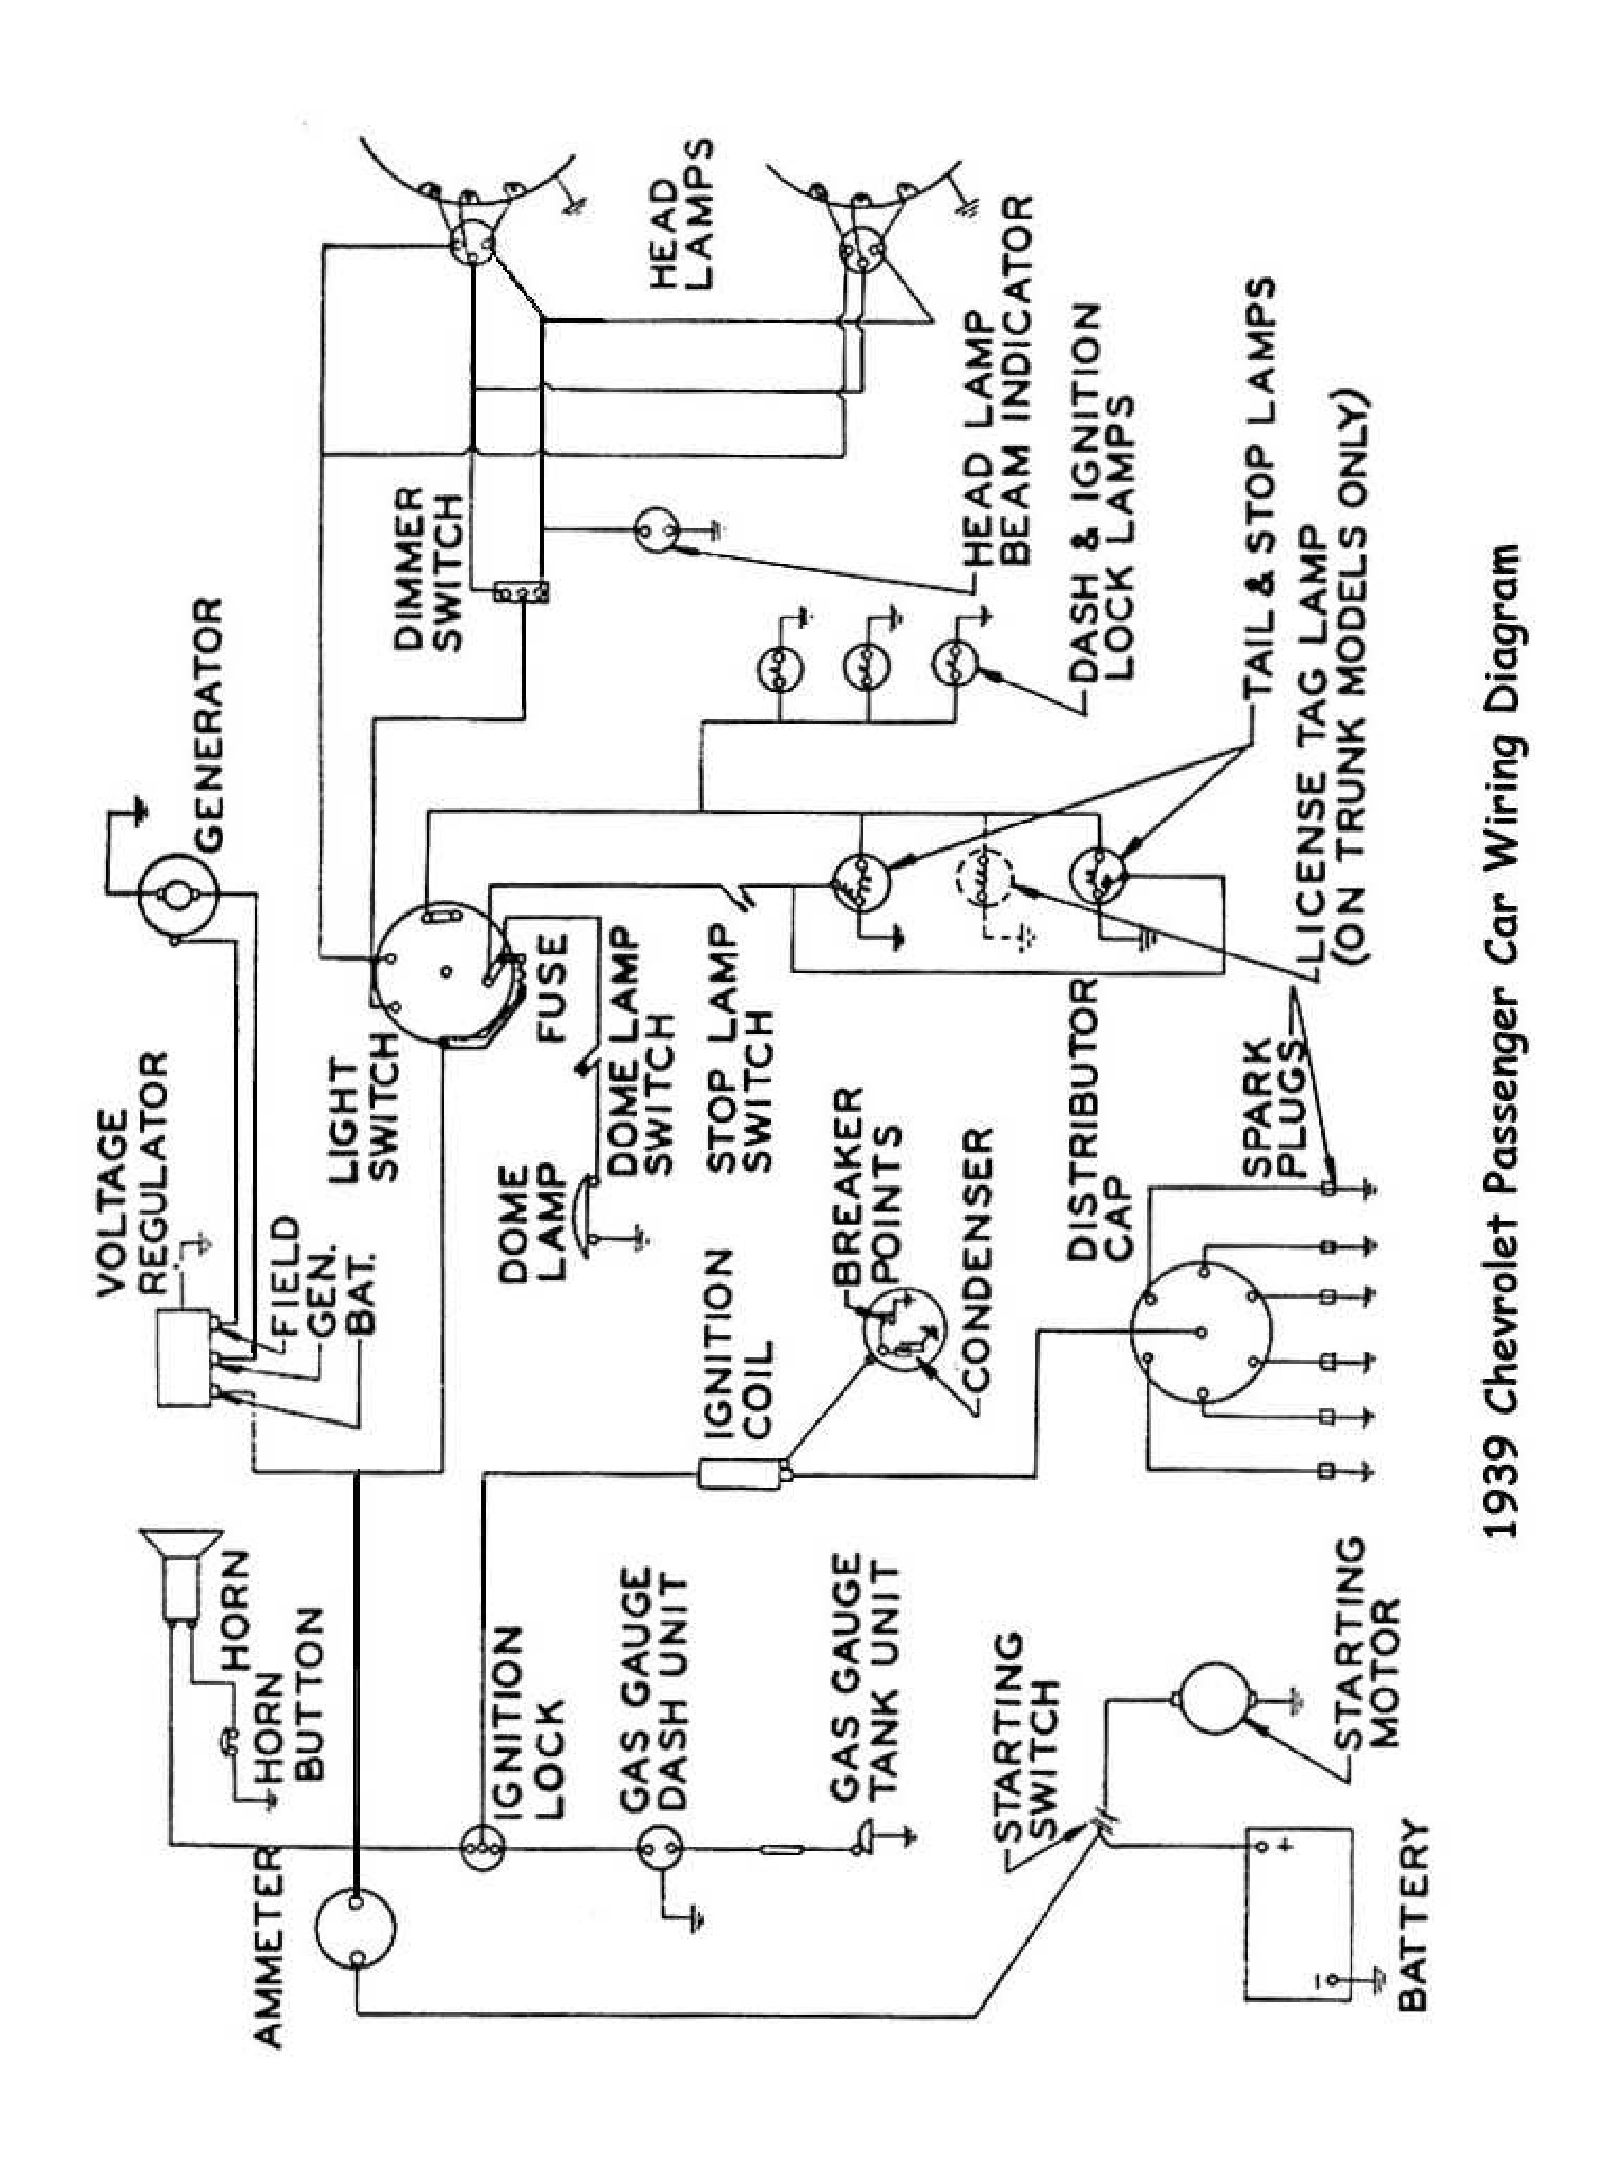 39car simple chevy wiring diagram chevy truck wiring \u2022 wiring diagrams chevy 350 ignition wiring diagram at reclaimingppi.co